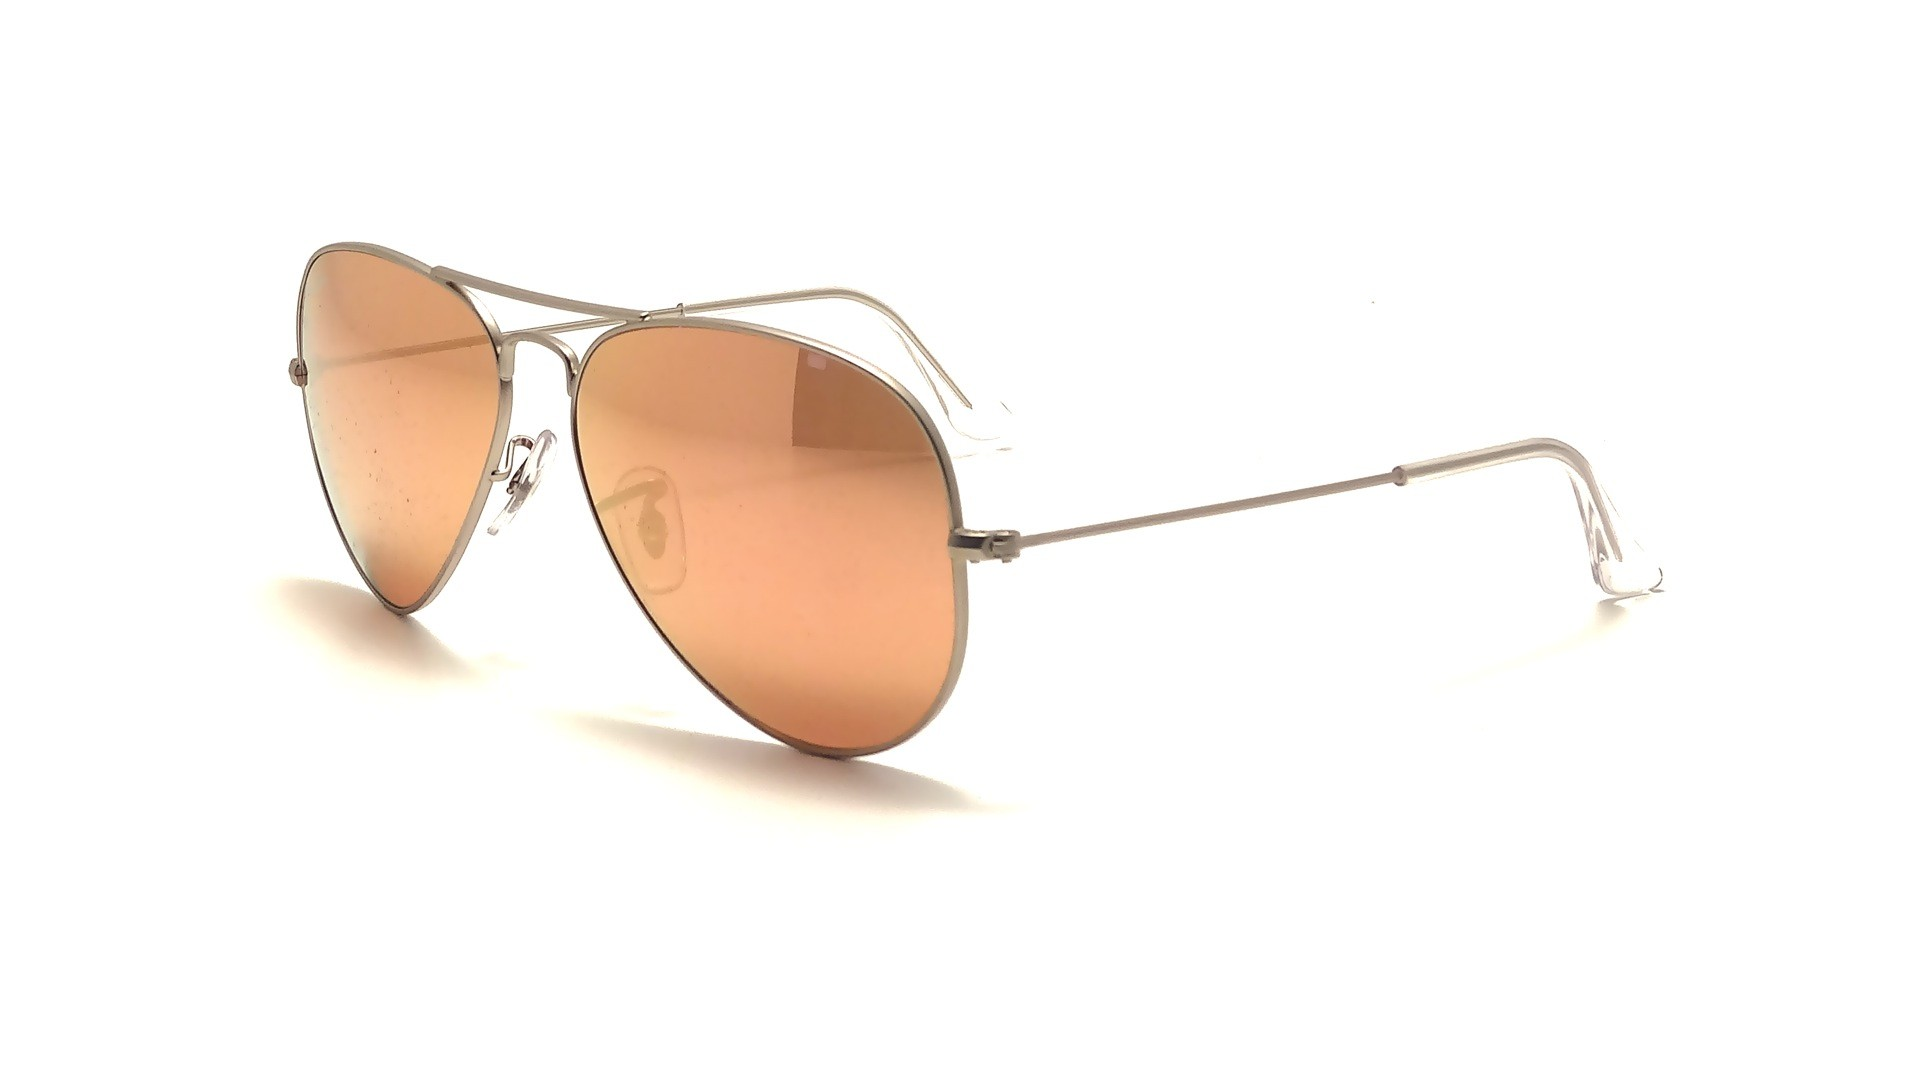 Sunglasses Ray-Ban Aviator Large Metal Silver RB3025 019 Z2 58-14 Large  Mirror 77ba30a9ef16